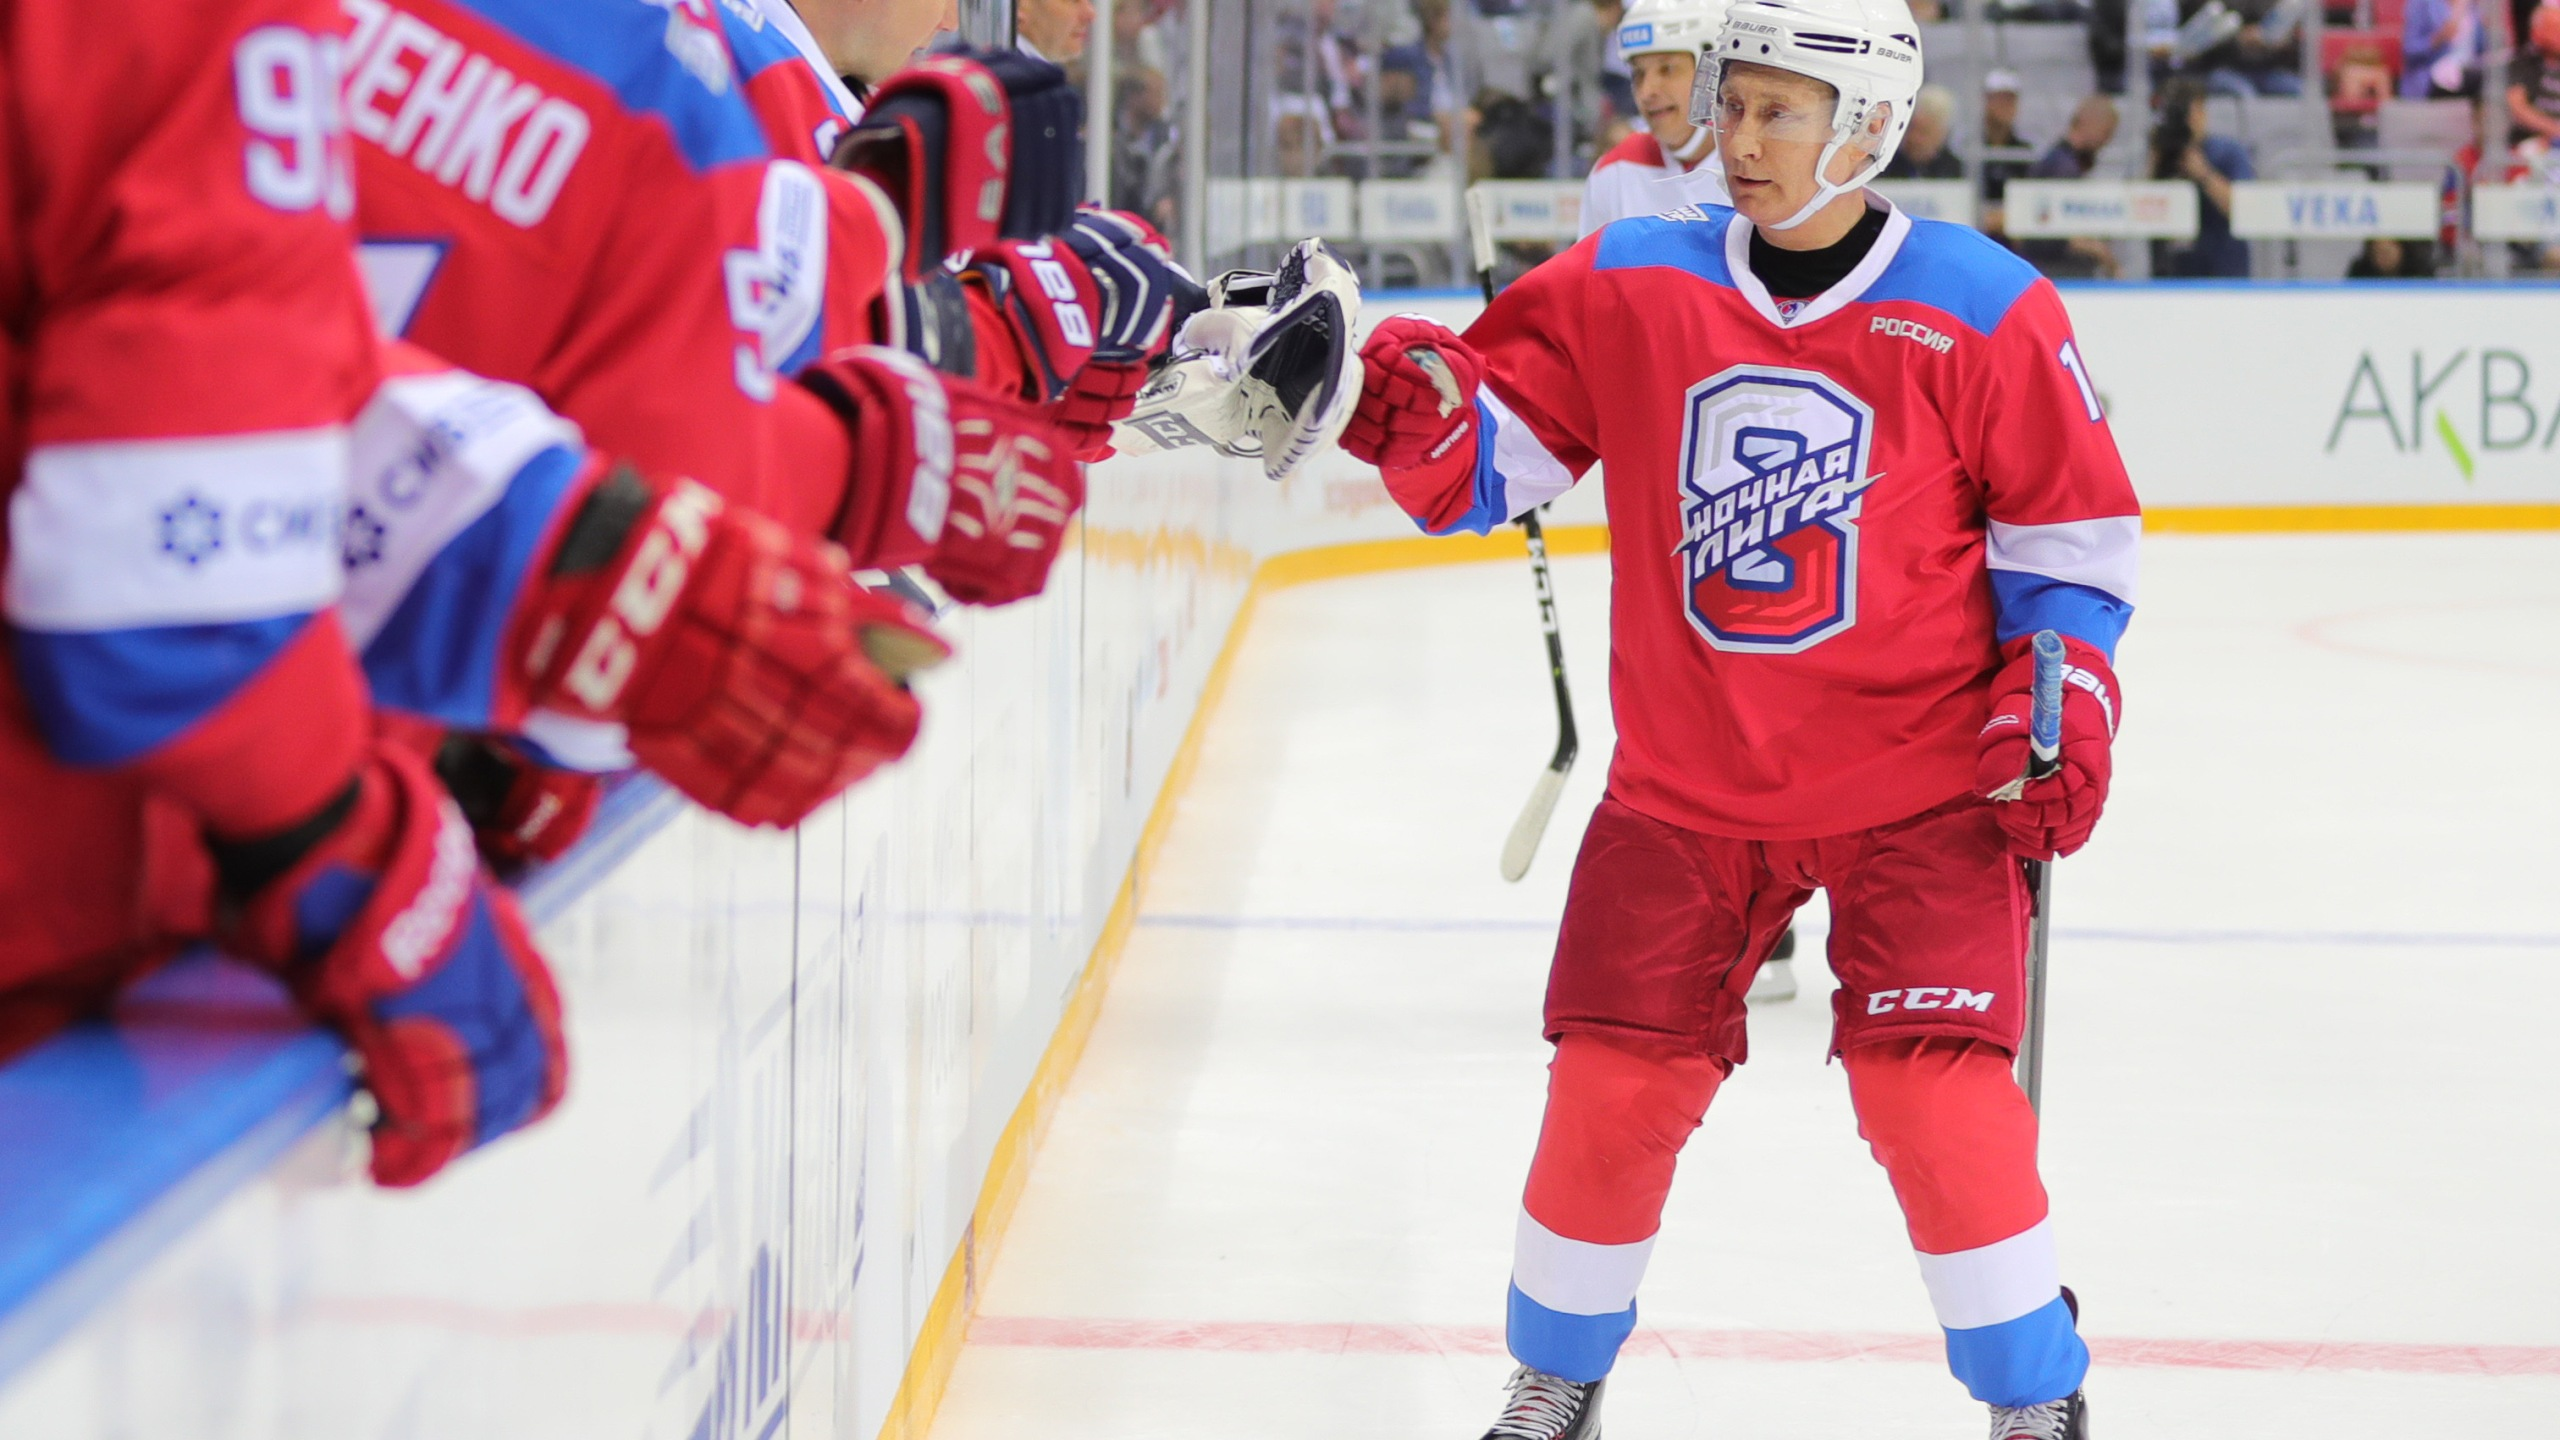 Russia S Putin Scores 8 Goals In Hockey Game But Victory Lap Doesn T Go As Planned Wgn Tv